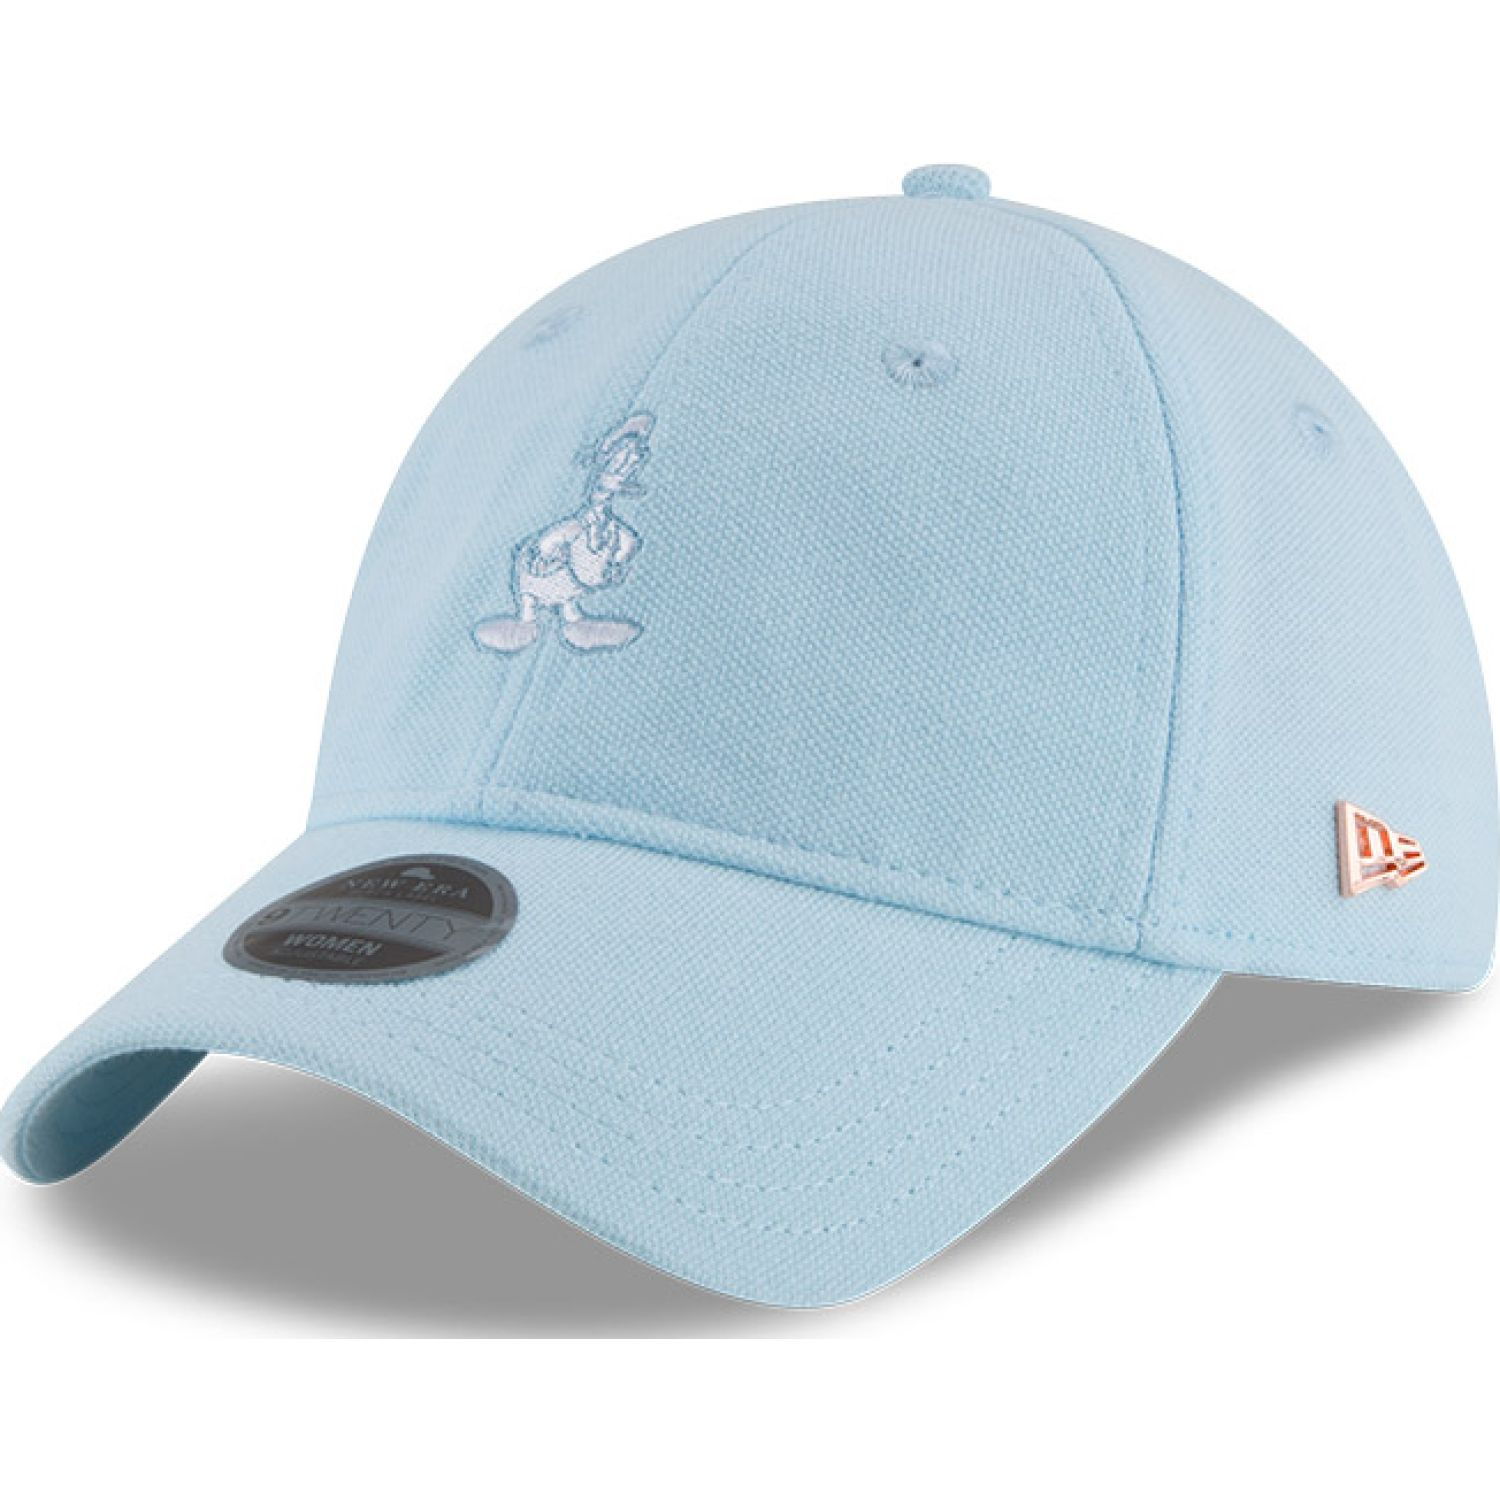 NEW ERA Wos Micro Stitch 920 Dnlduk Xbl OPEN BLUE Chullos y Gorros